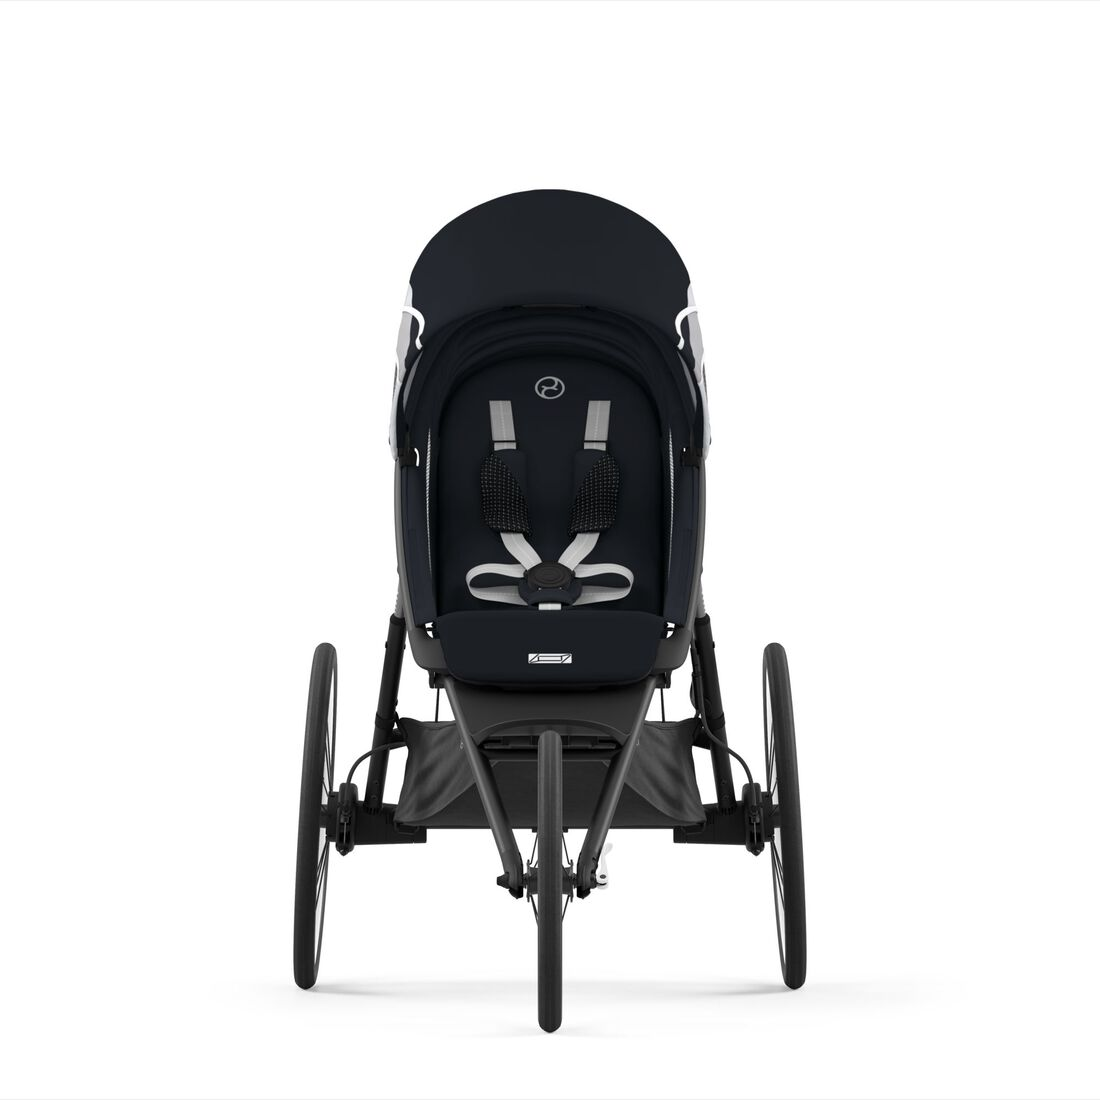 CYBEX Avi Seat Pack - All Black in All Black large image number 3